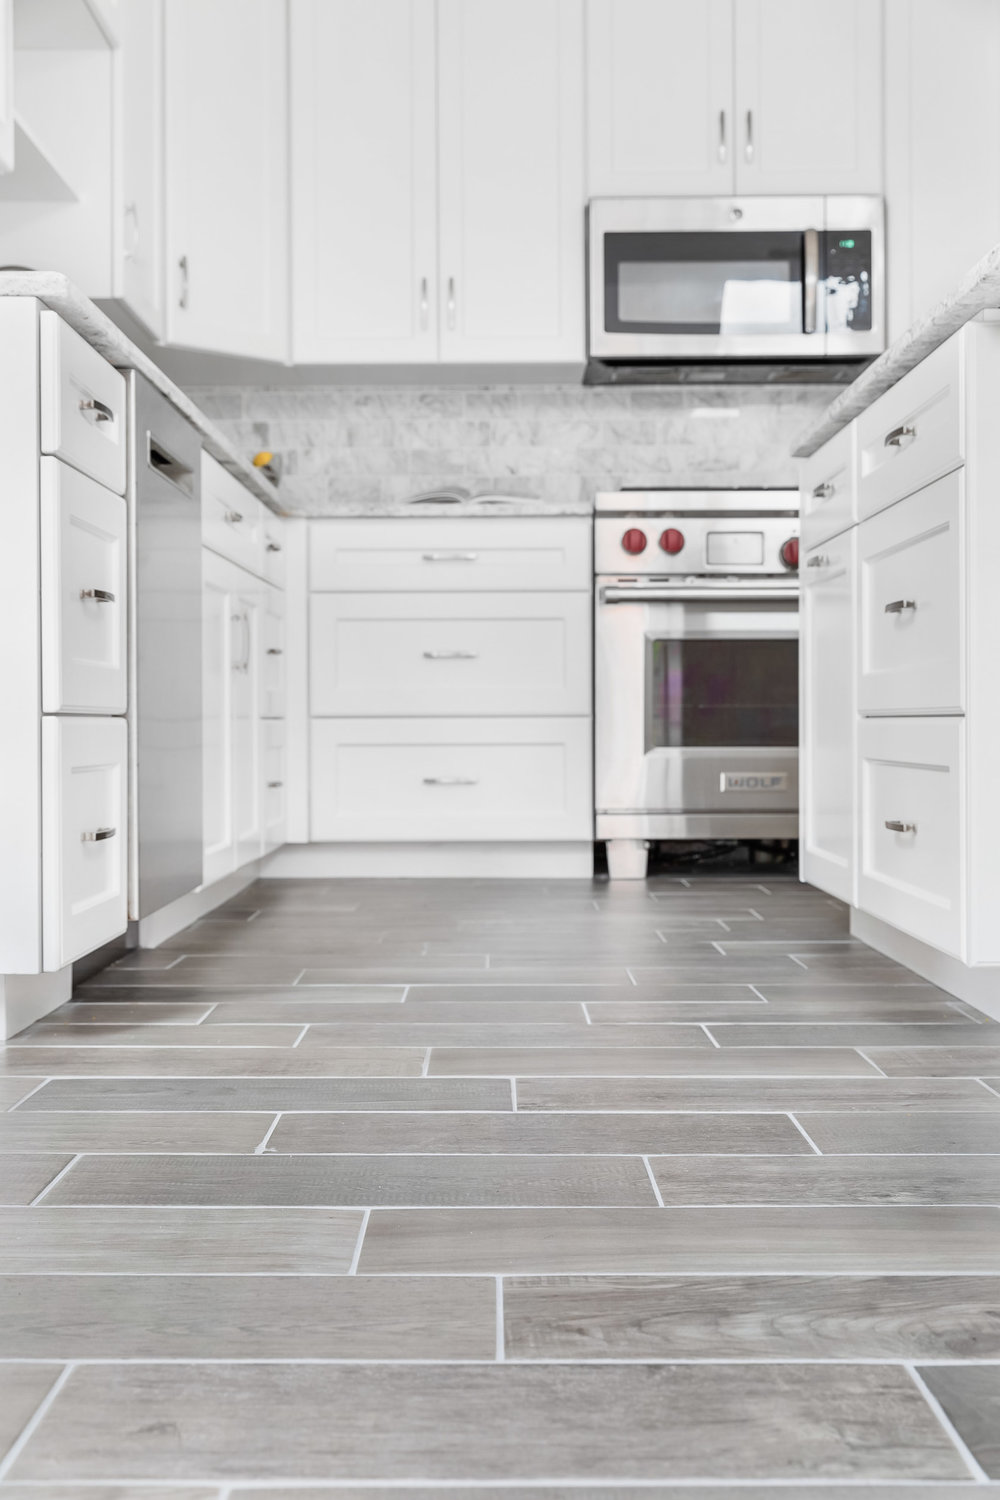 Product photography of a kitchen remodel in a Greenwich, Connect